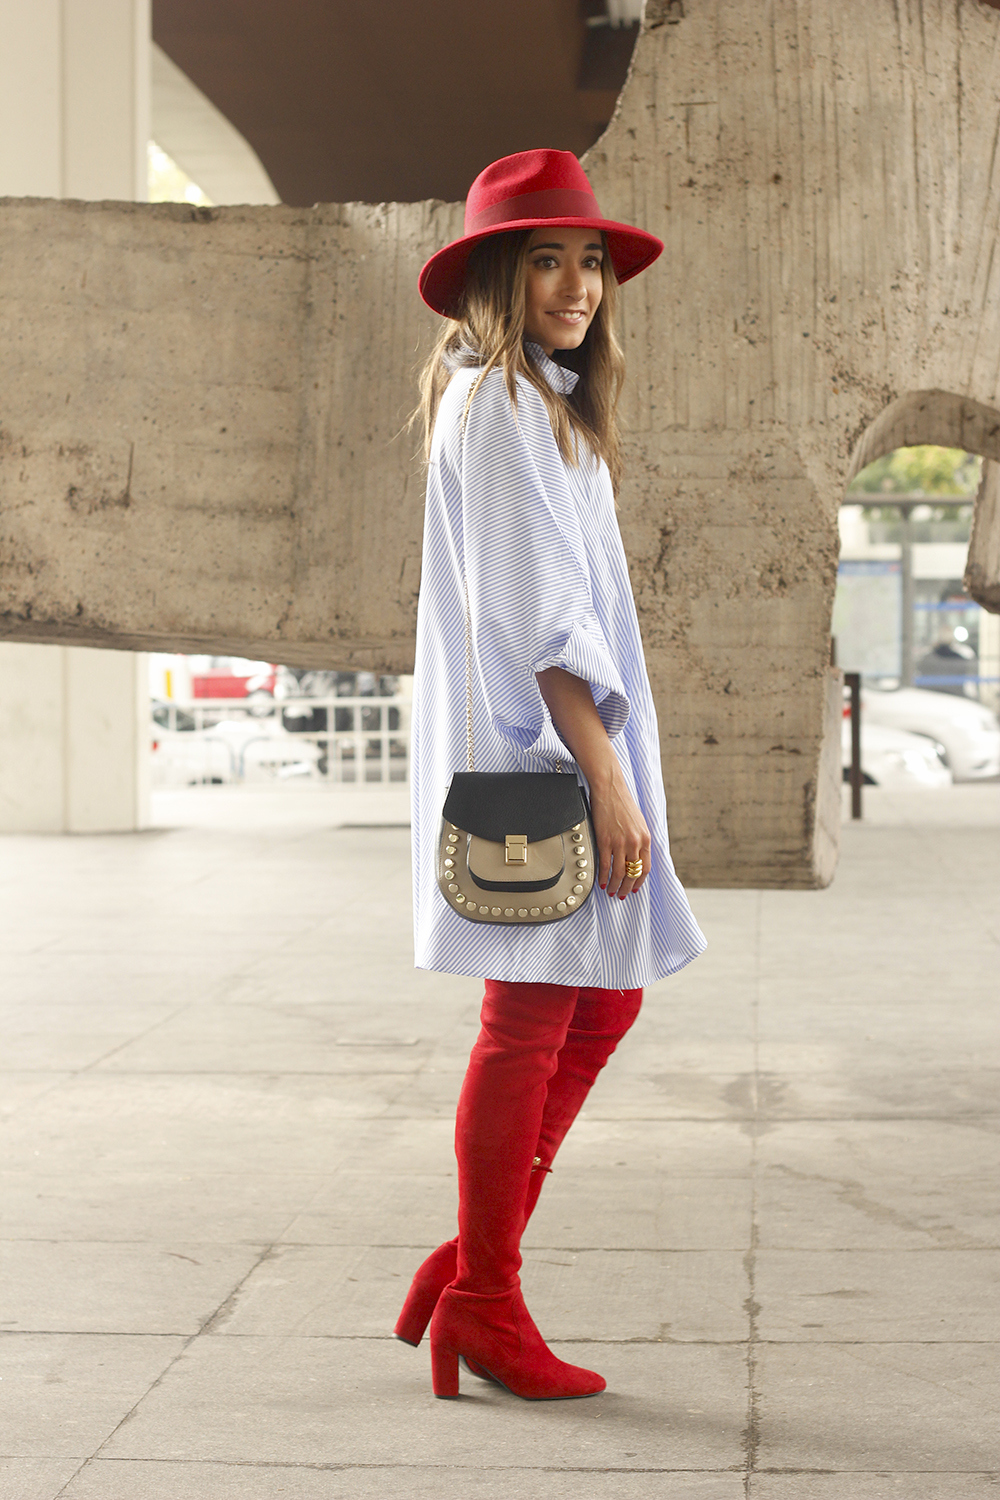 striped dress red over the knee boots red hat accessories fashion outfit style autumn06